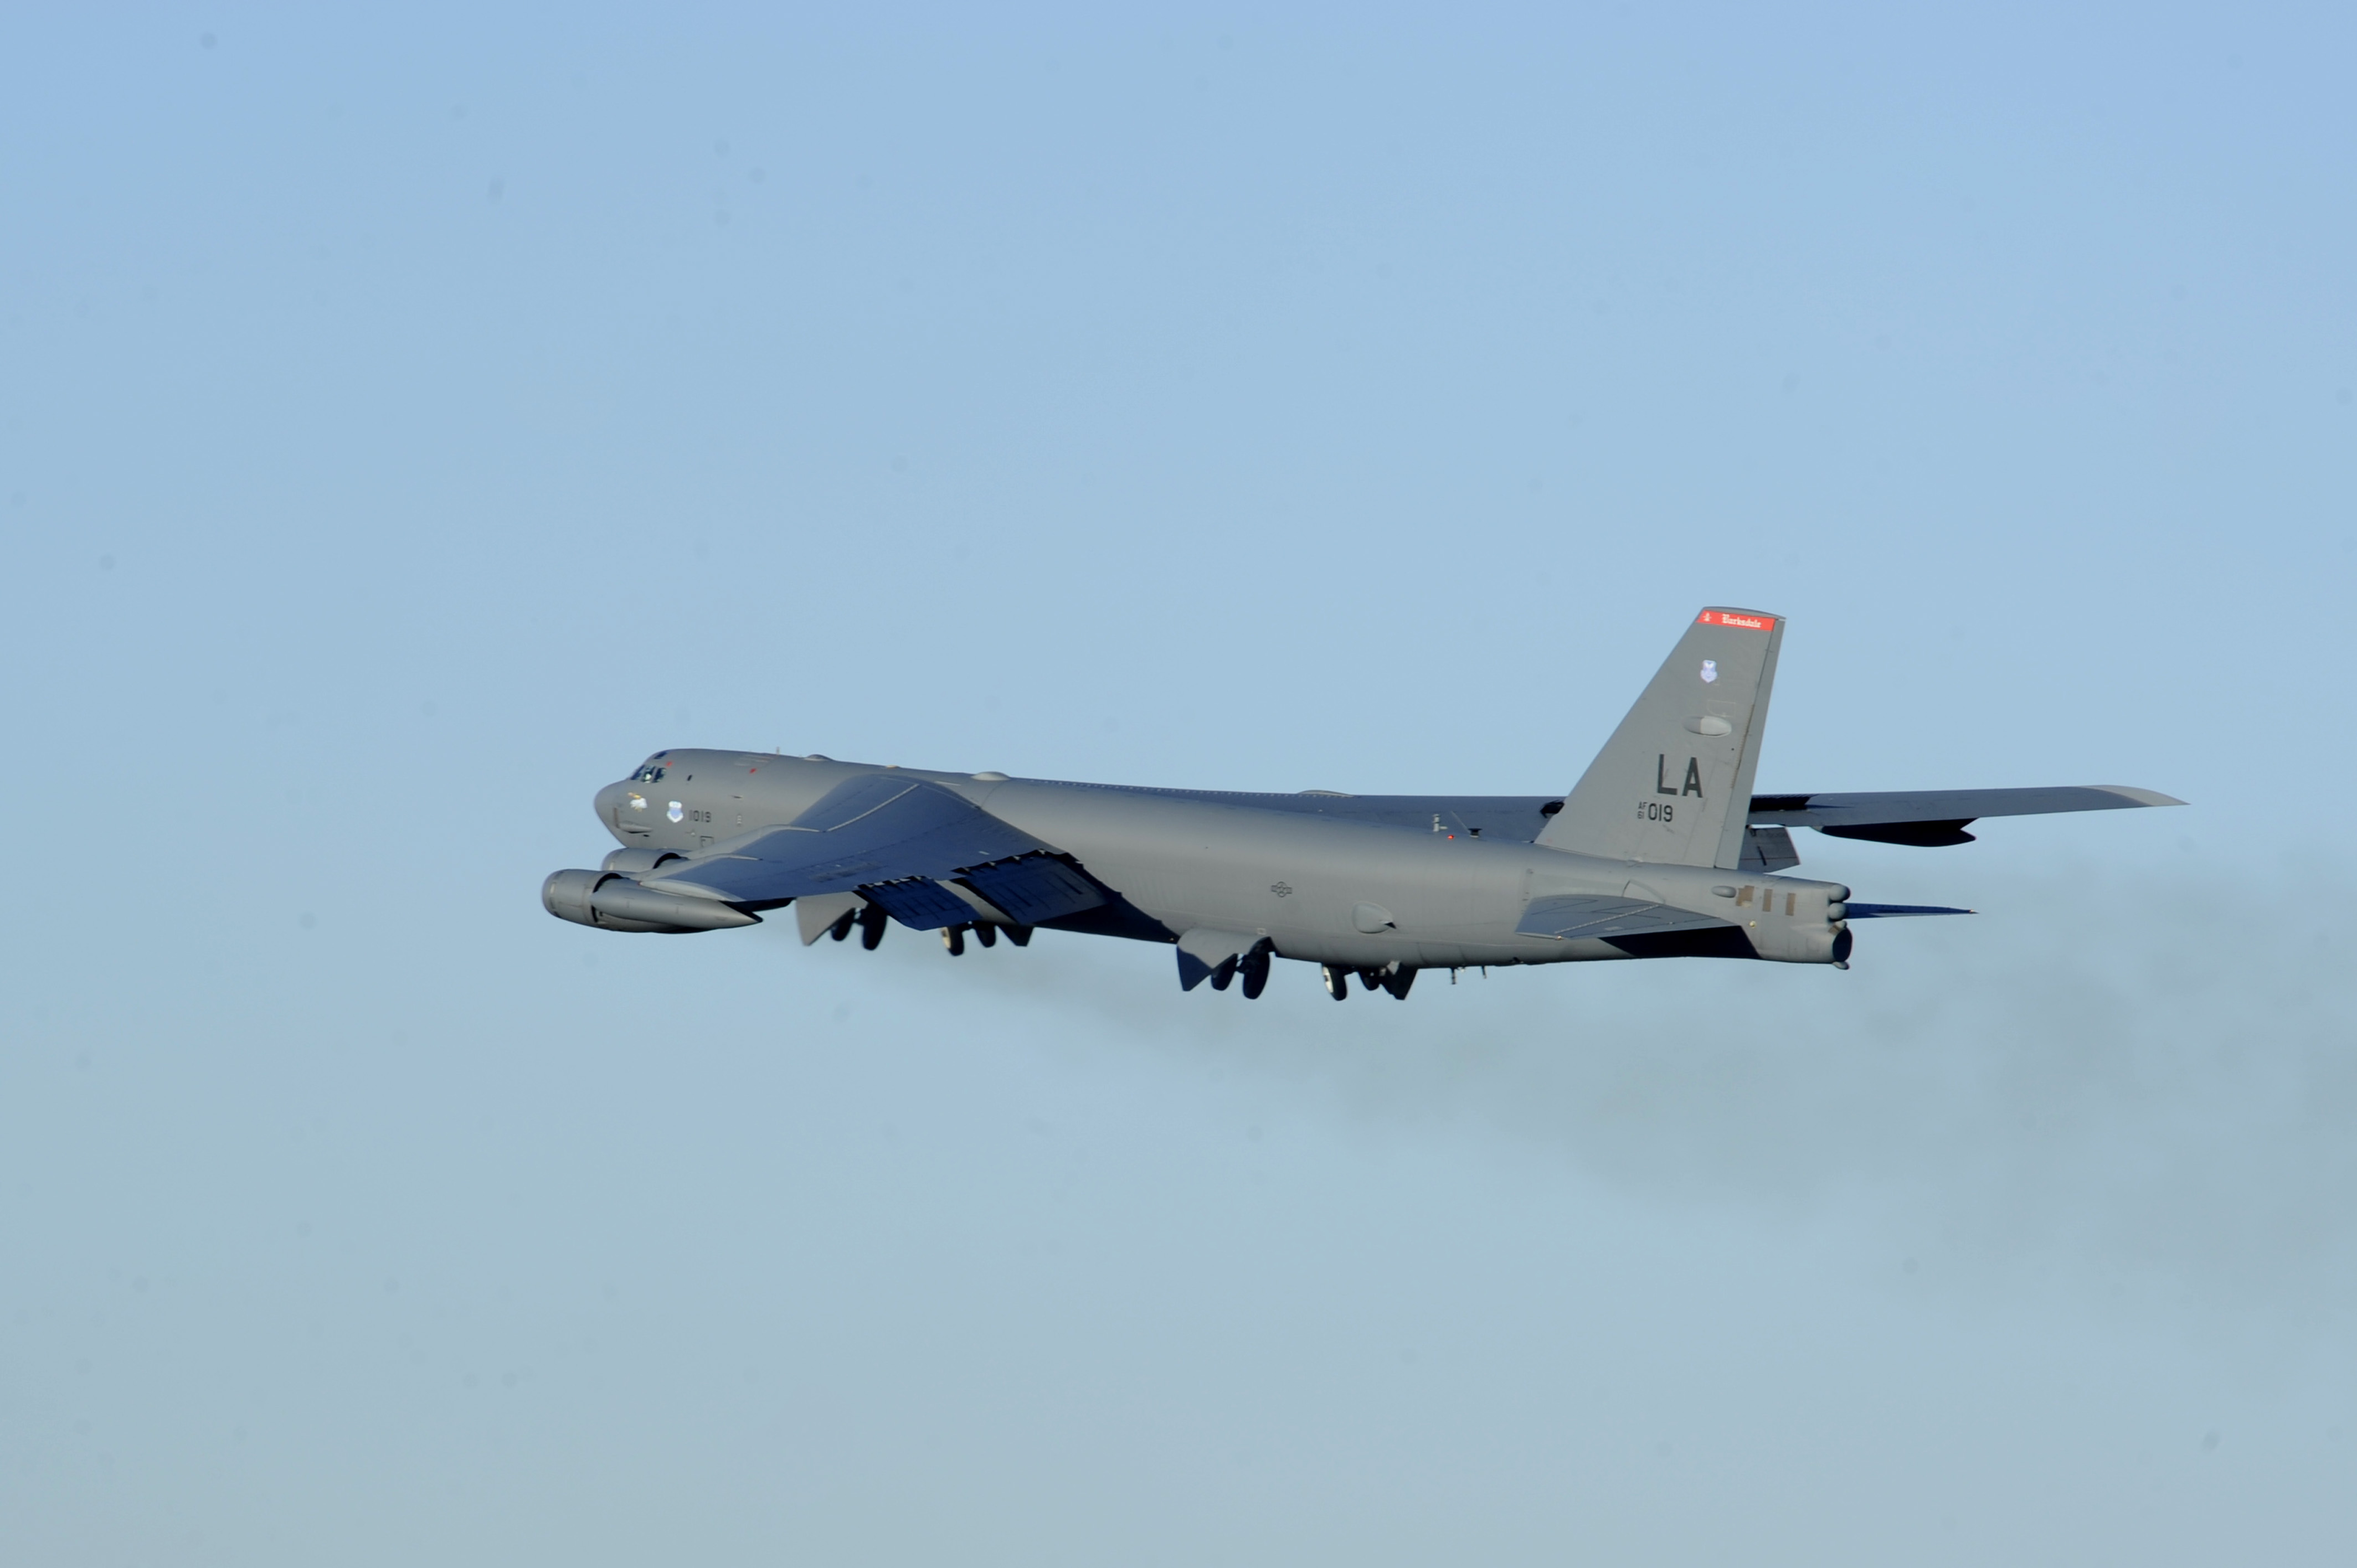 b-52s-deploy-spain-nato-military-exercise